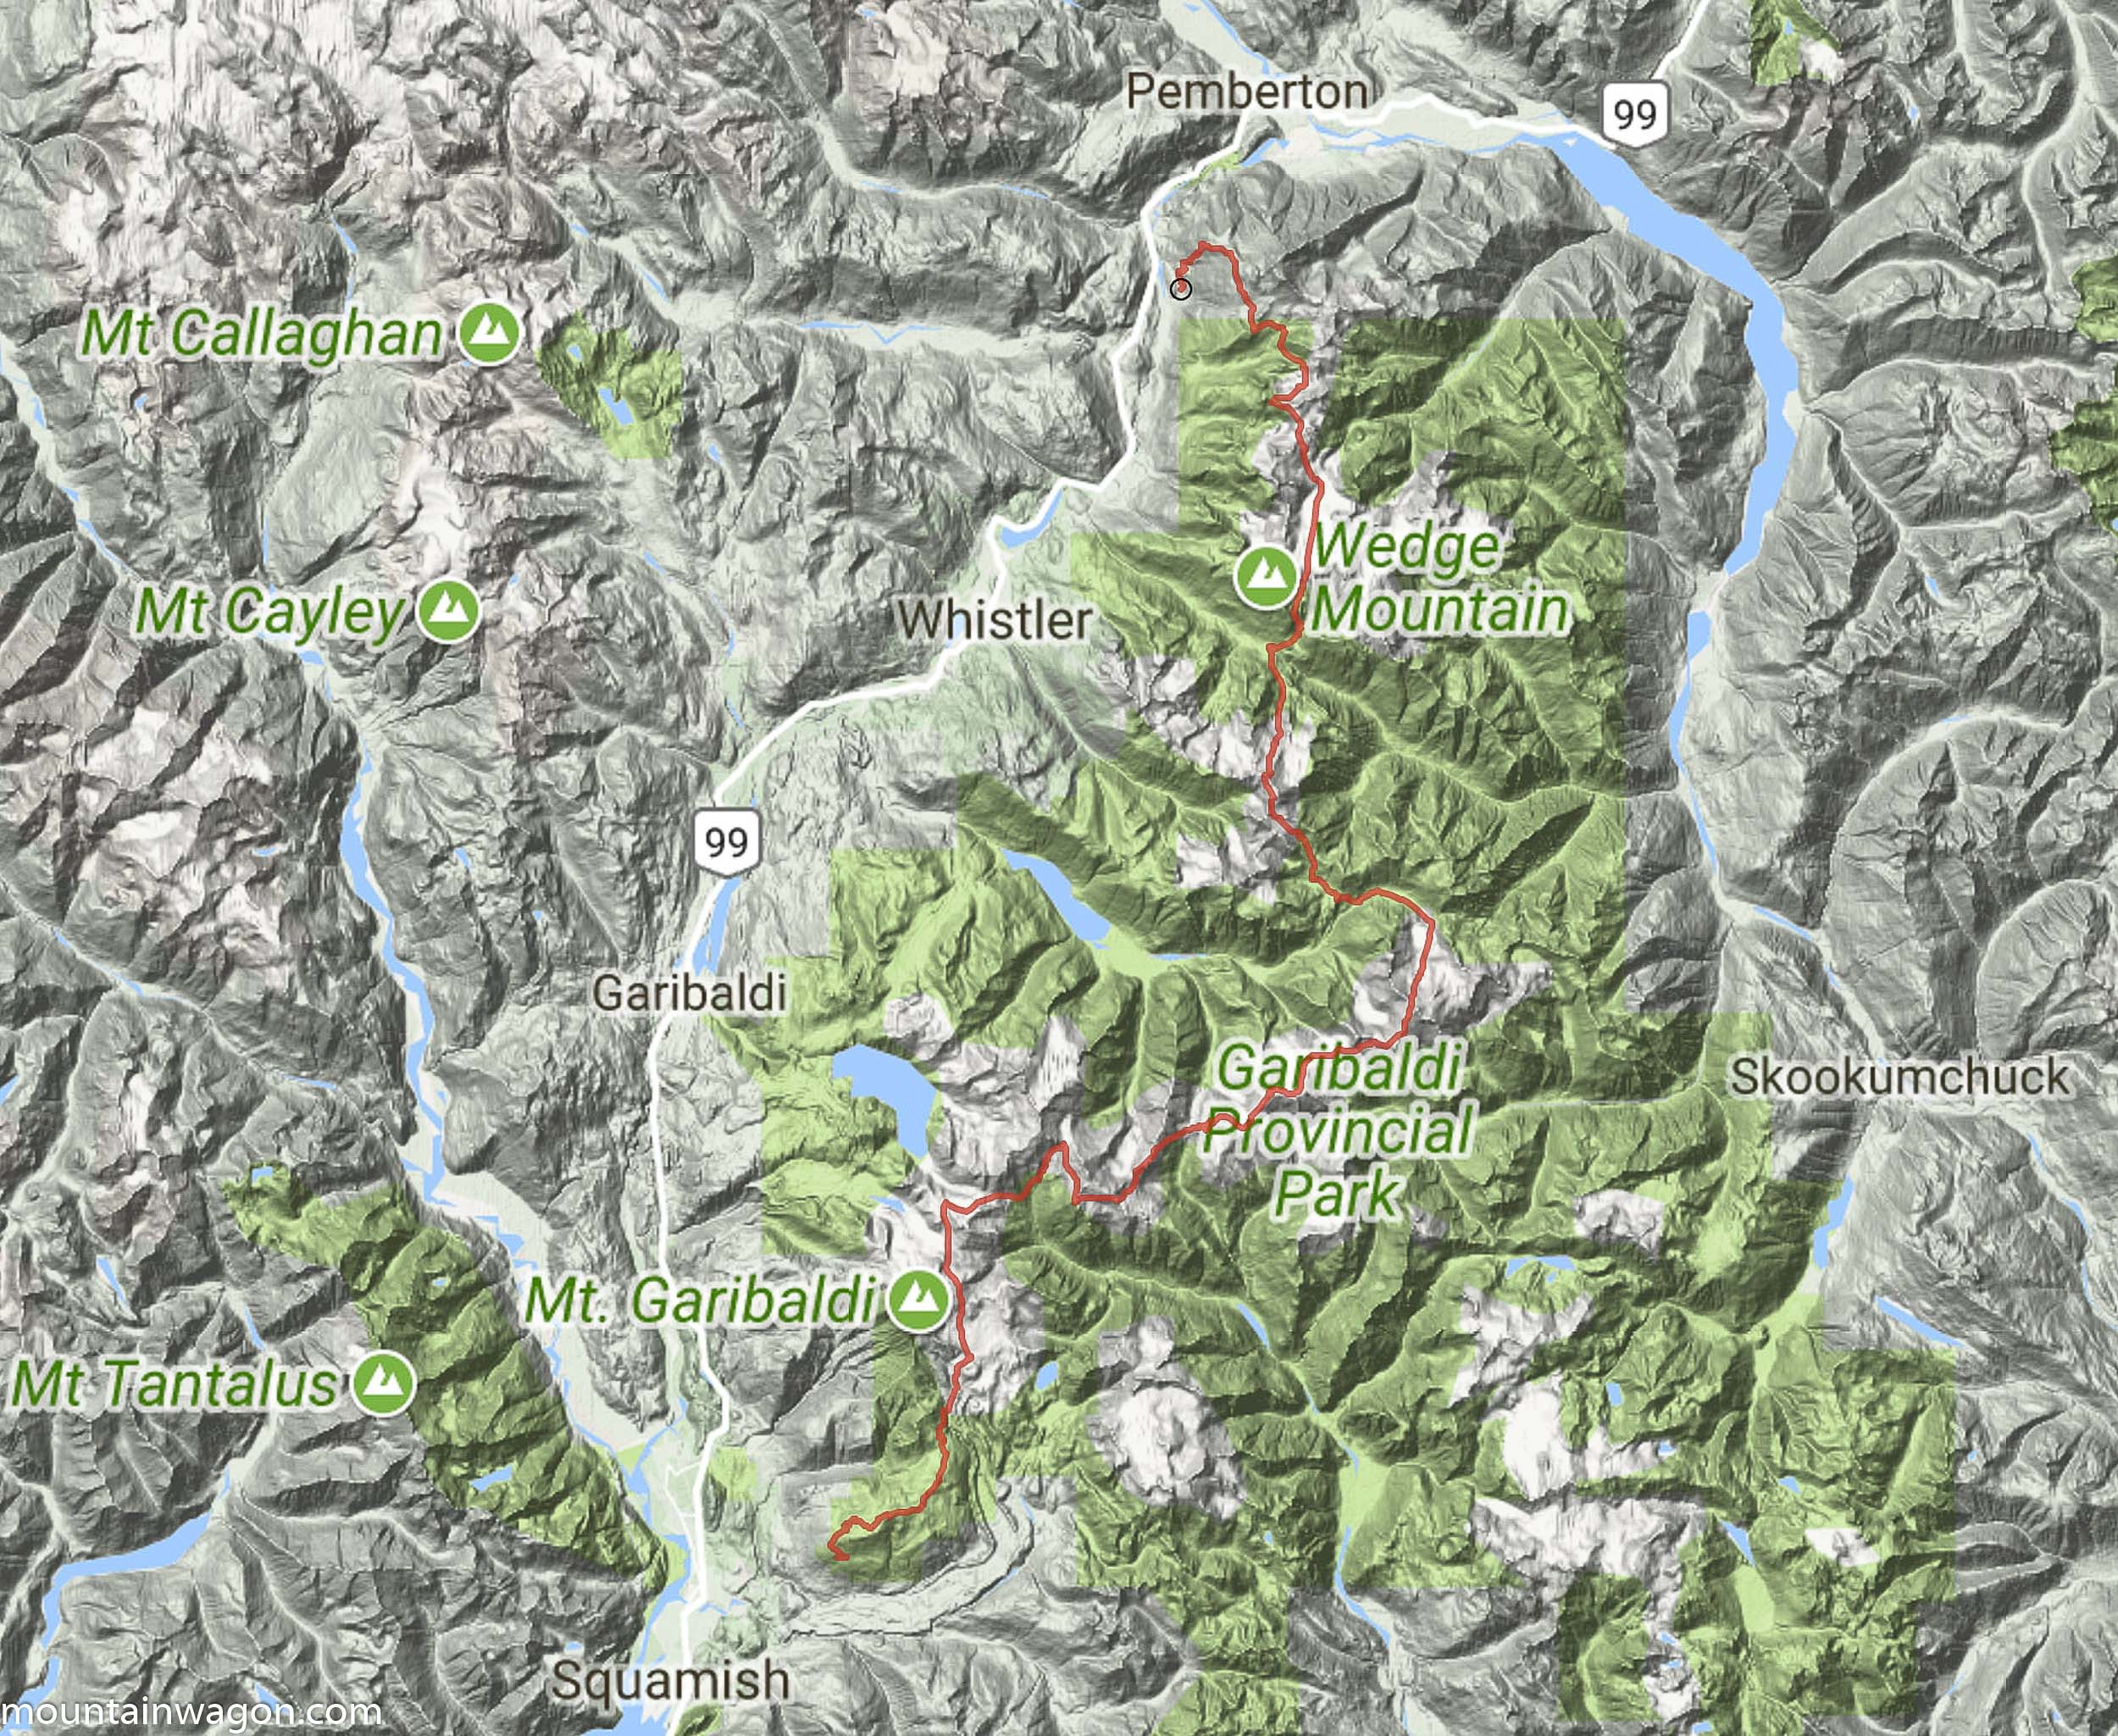 Veenstra's route took him through the heart of Garibaldi Park - basically going from Pemberton to Squamish via huge mountain ranges instead of the conveniently located Highway 99.